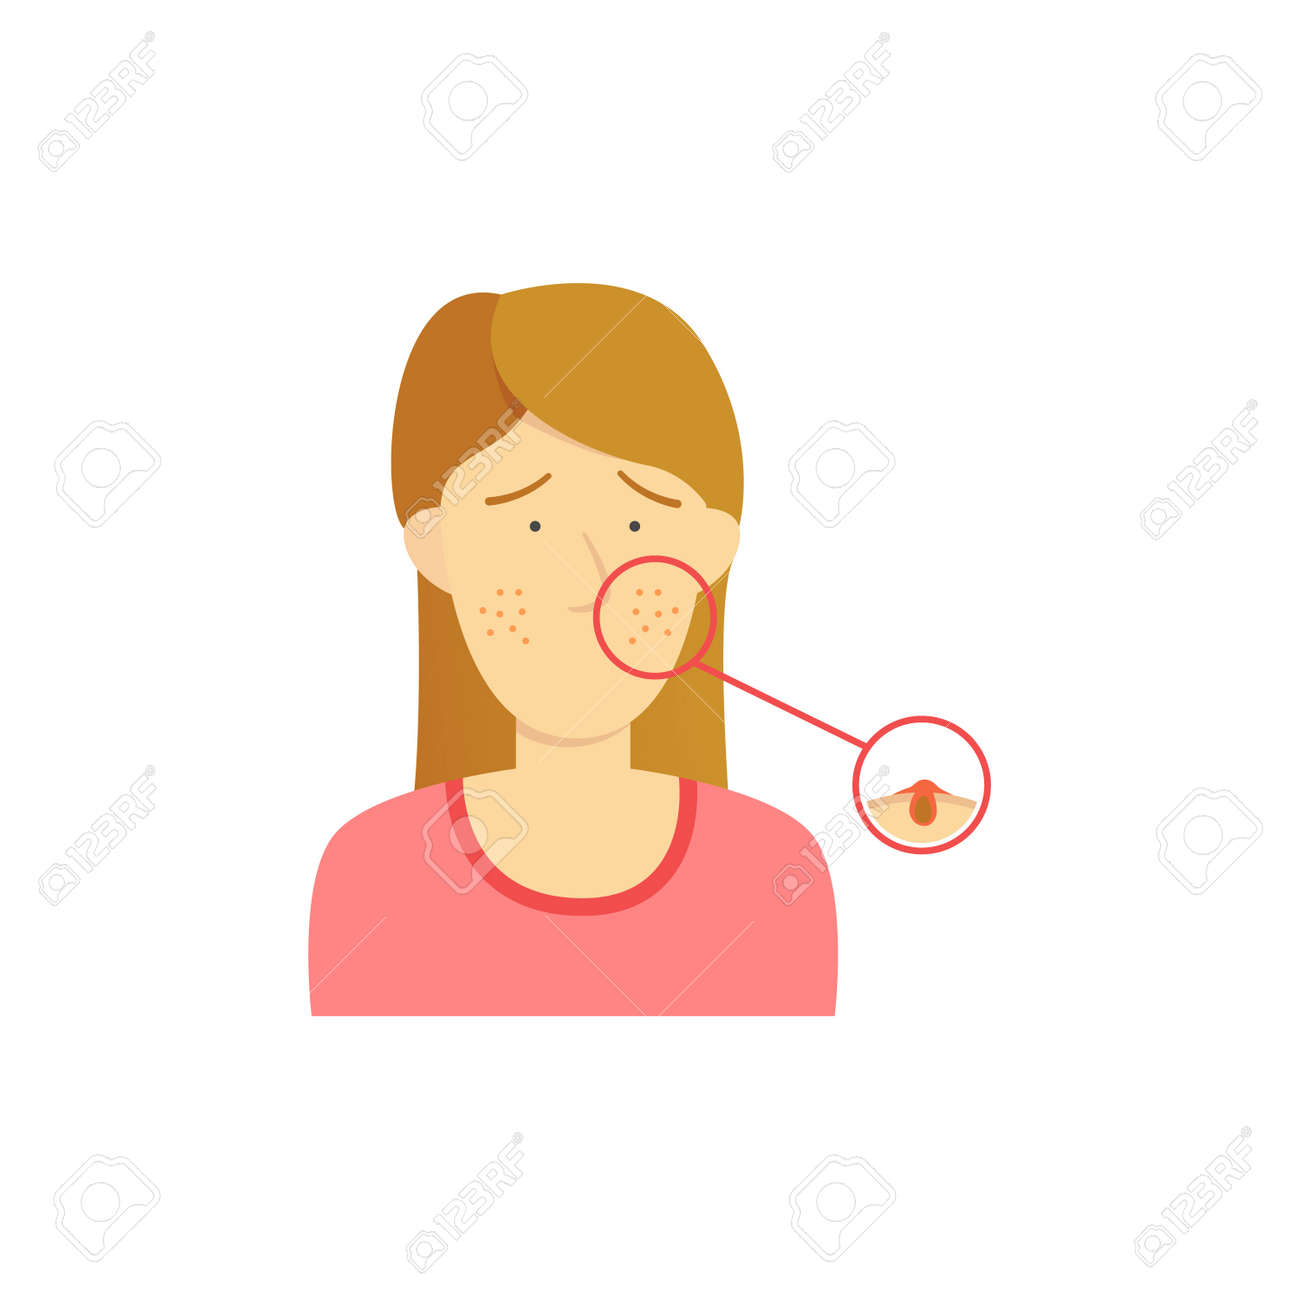 brown hair girl woman with acne diagram detail on face illustration stock  vector - 114890303